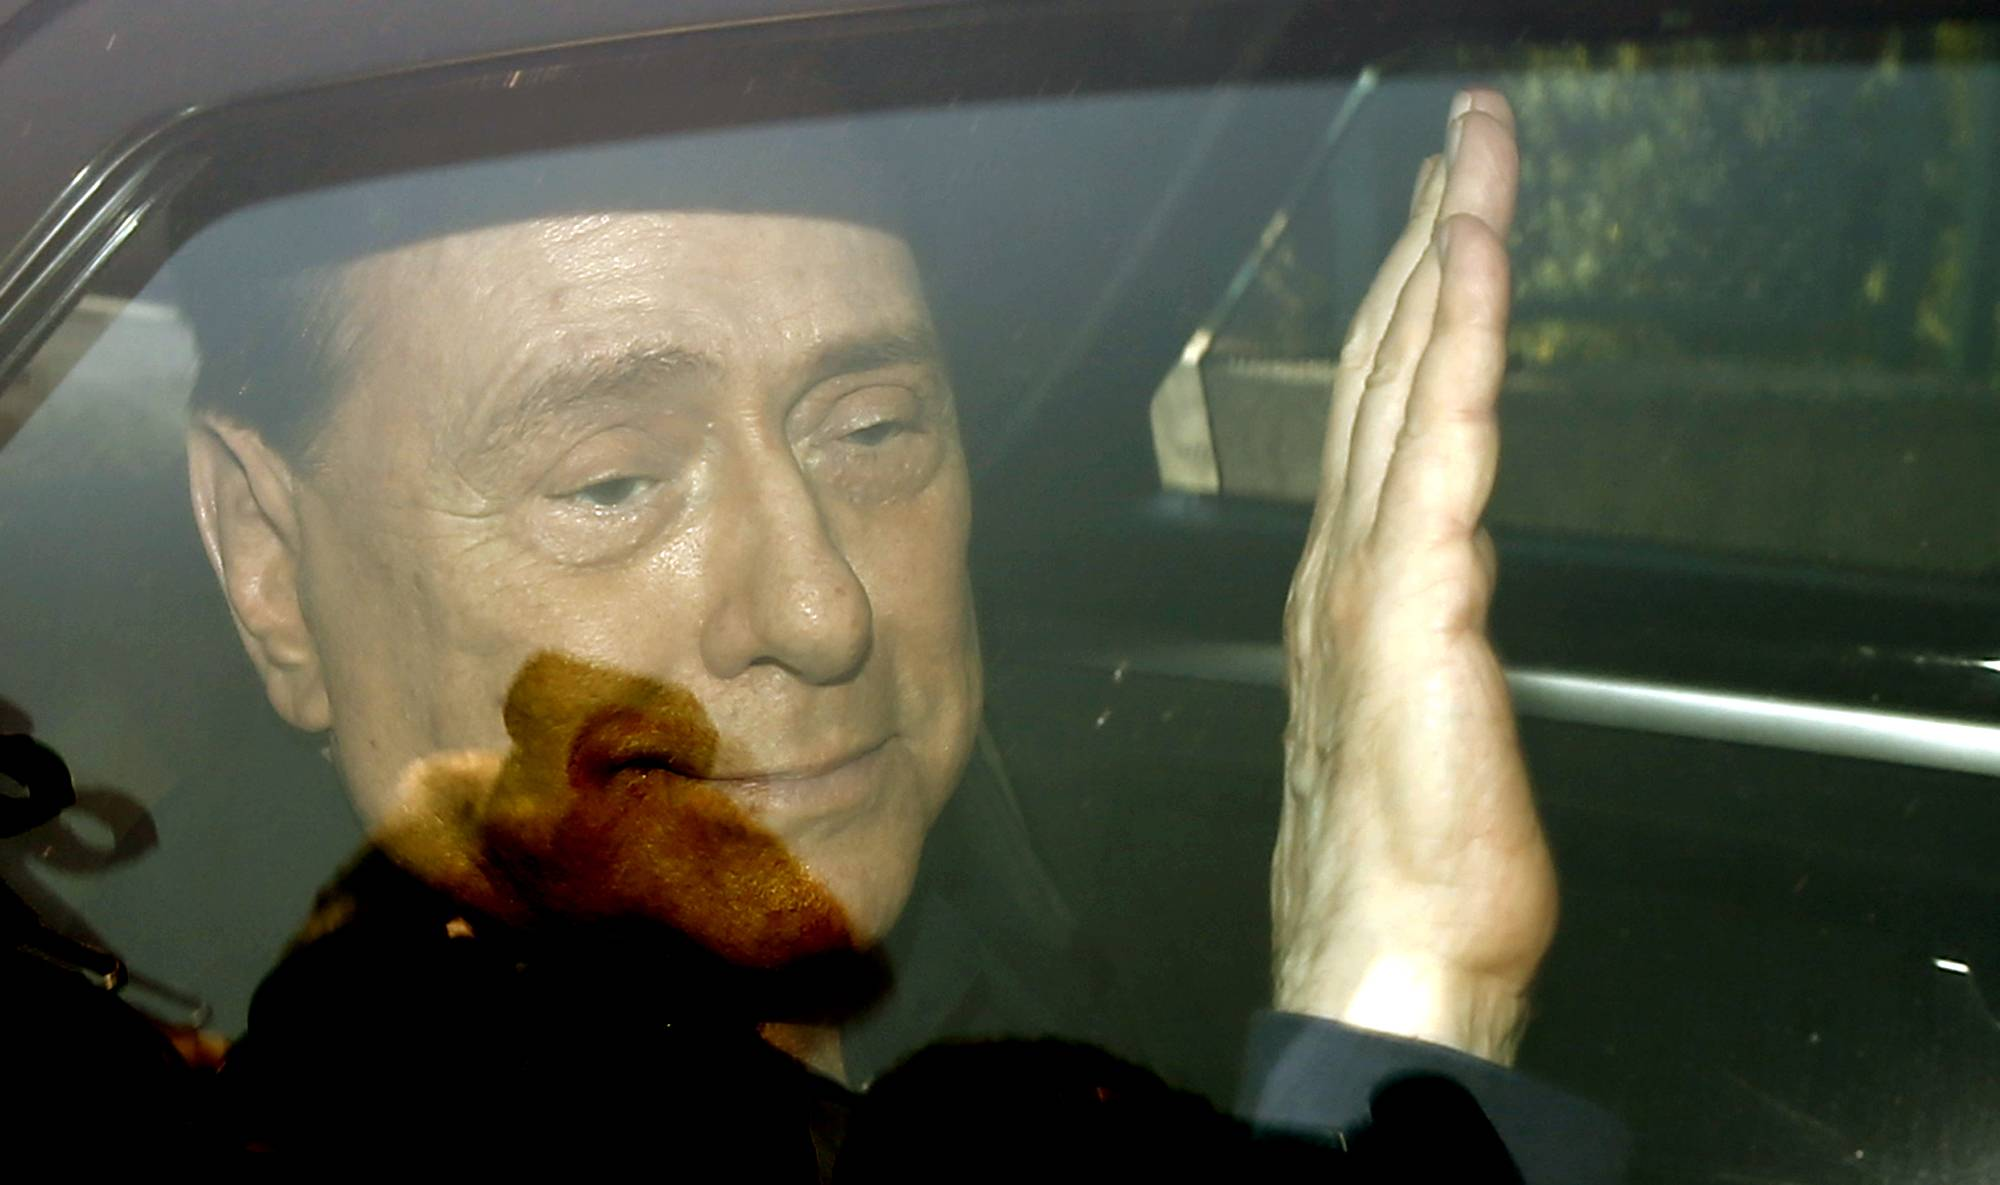 Italy's former Premier Silvio Berlusconi waves Friday as he leaves the 'Sacra Famiglia' institute in Cesano Boscone, Italy.  An Italian appeals court has acquitted the former premier in a sex-for-hire case.